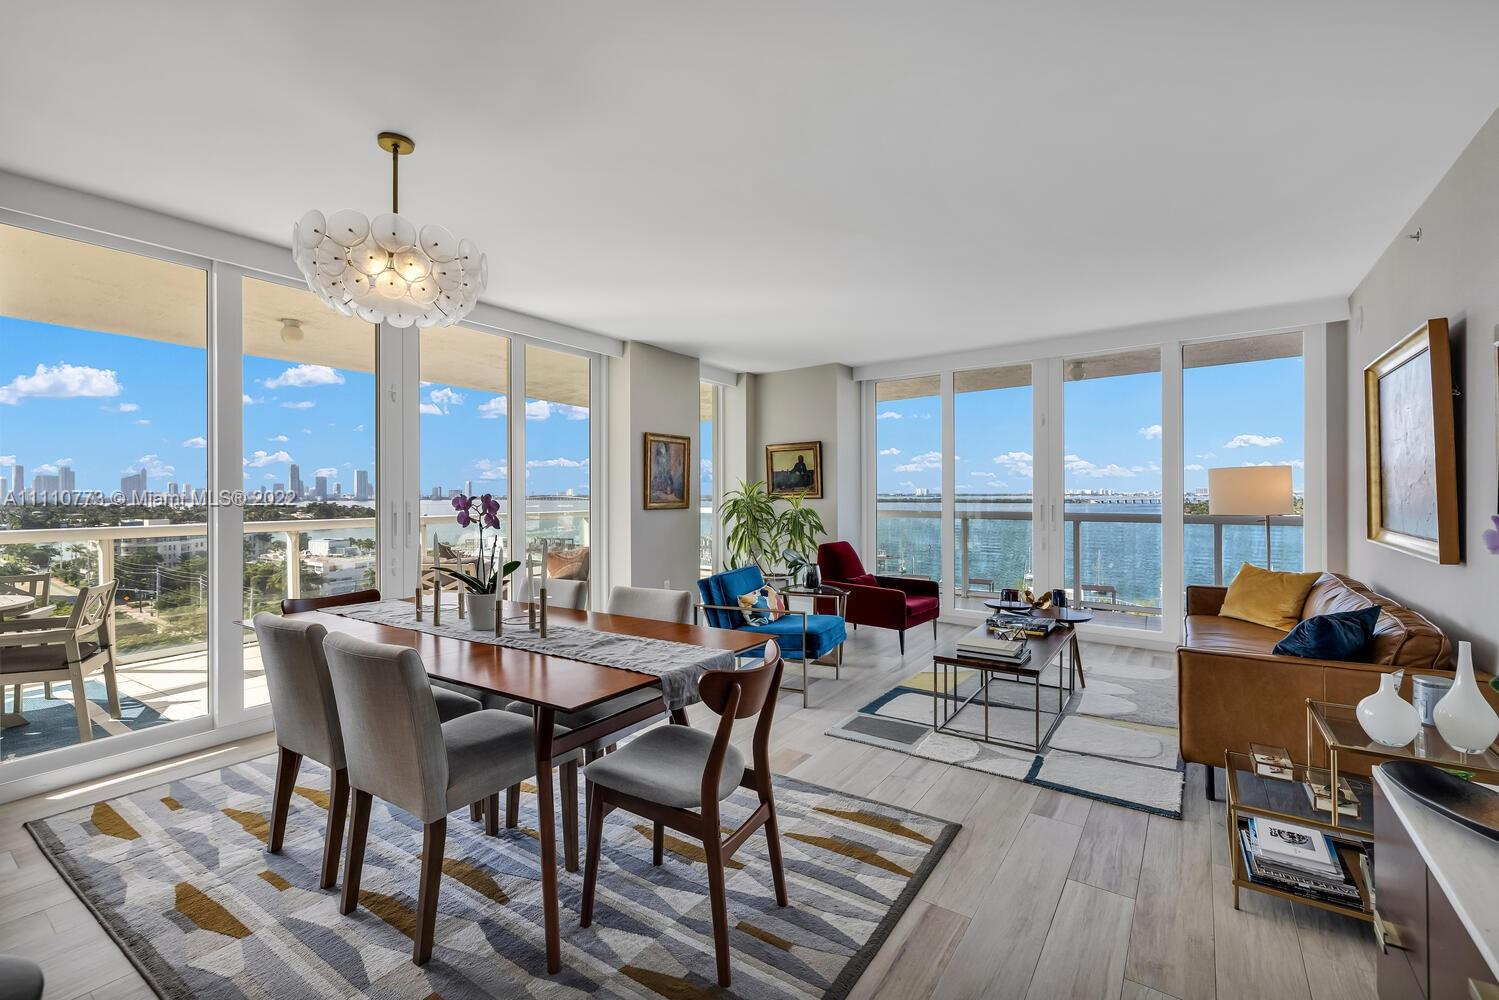 Rarely available 01 line ( considered to be the best line) corner 2 bed / 2 bath unit.  1,477 sq. ft.  plus and additional 665 sq. ft. of wrap around terrace.  Stunning views of Biscayne Bay and the Miami skyline.  Architectural Digest quality renovation with state of the art brand new kitchen,  and new impact windows compliment this unit.   Brand new resort style pool and fitness center including tennis court.